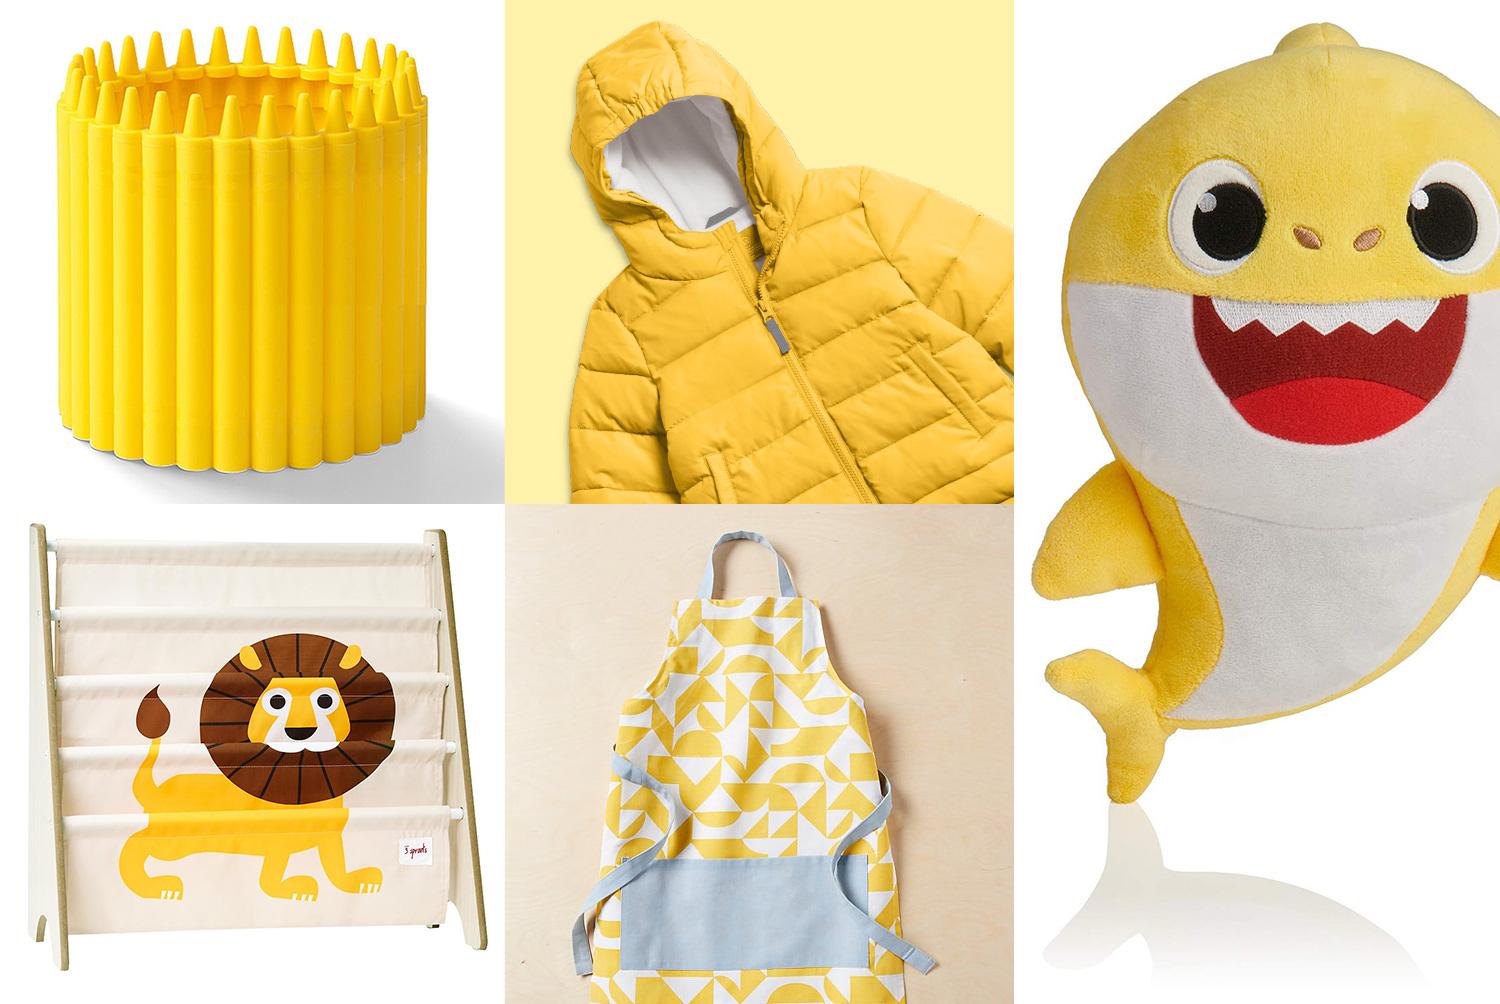 primary grid of yellow gift items